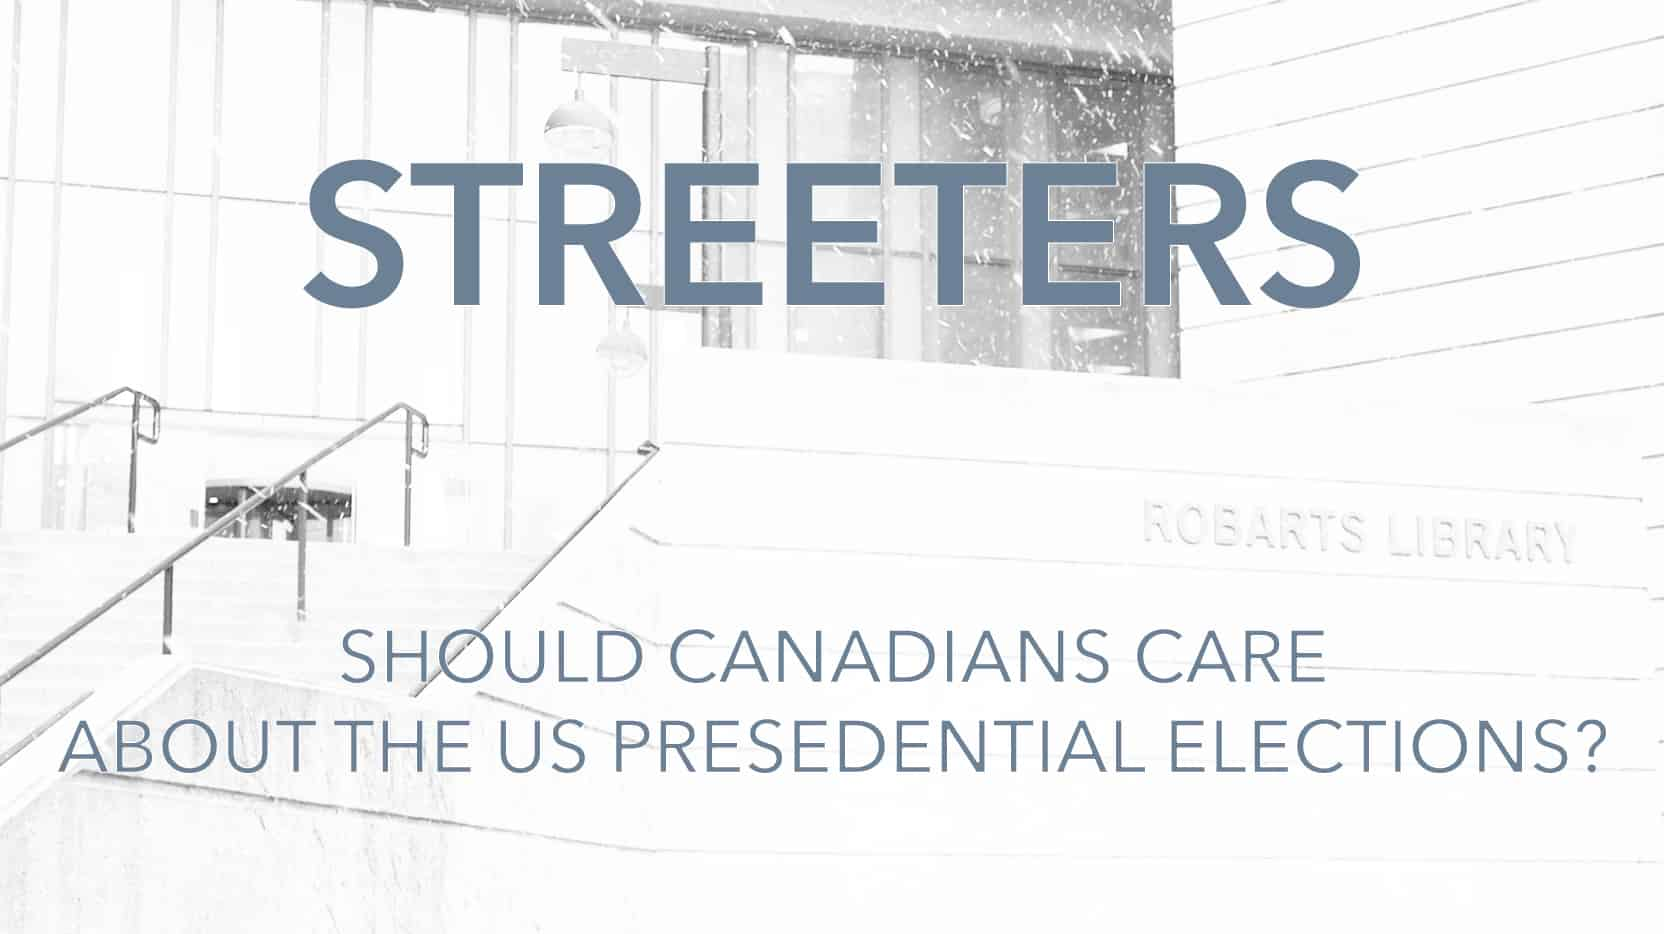 Streeters: Should Canadians care about the US presidential elections?